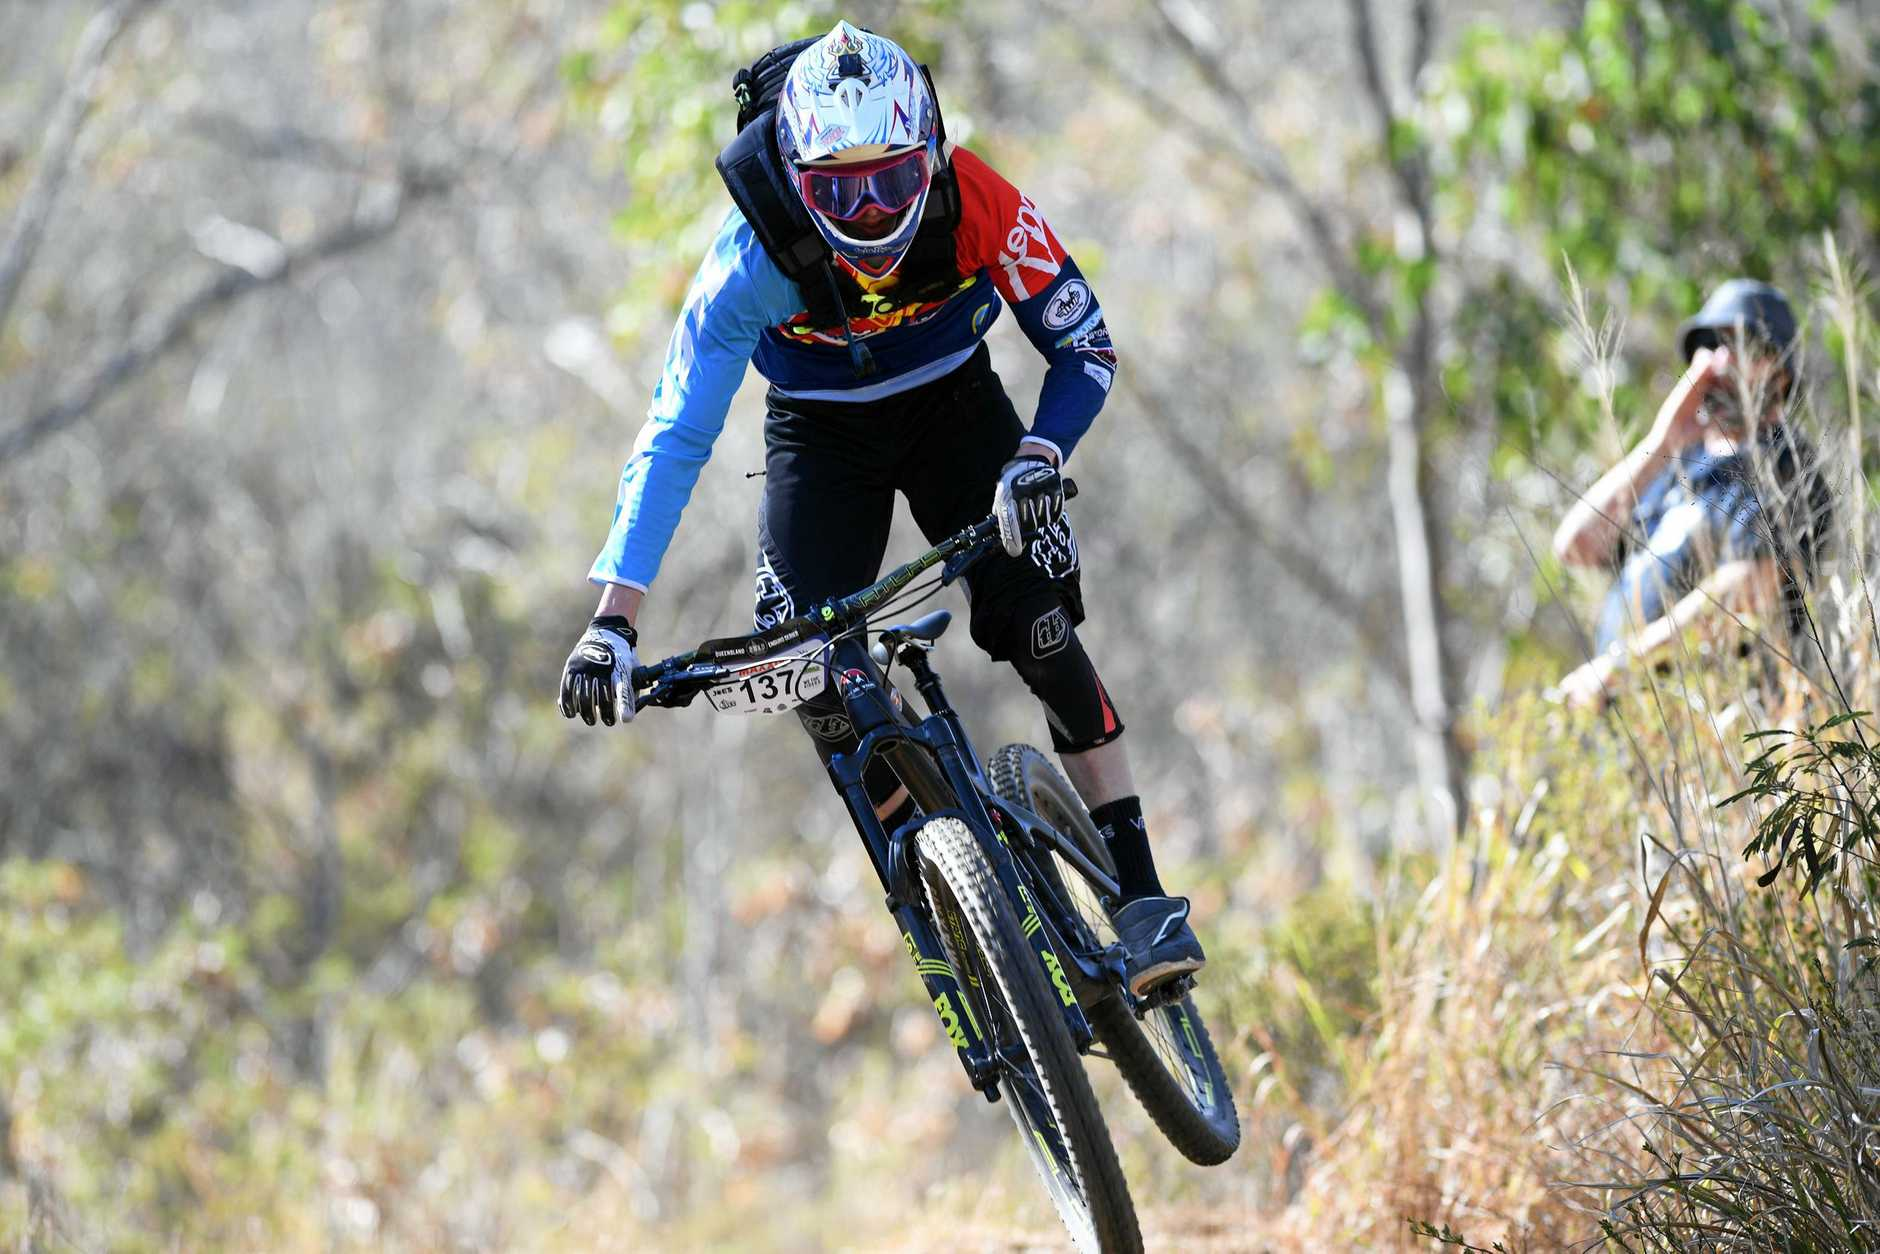 Rockhampton's Zane Keleher takes on the First Turkey trails during the fourth and final round of the CQ Enduro Series on Sunday.